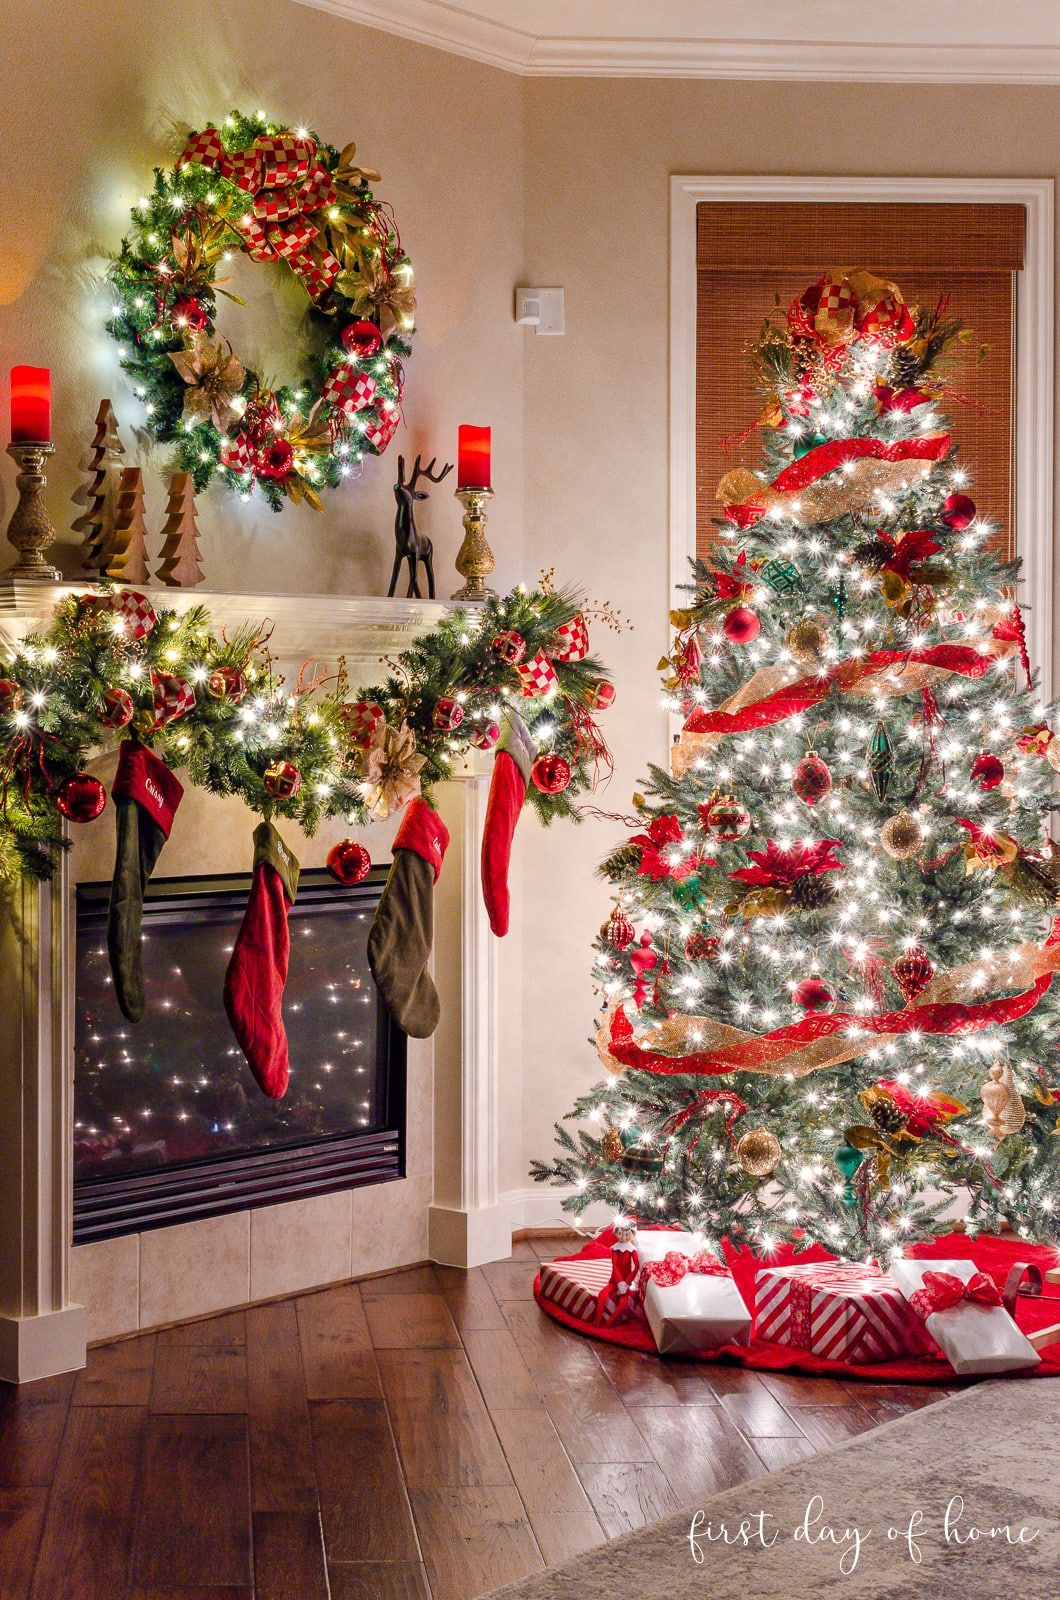 Quick & Easy Tips on Christmas Tree Decorating to